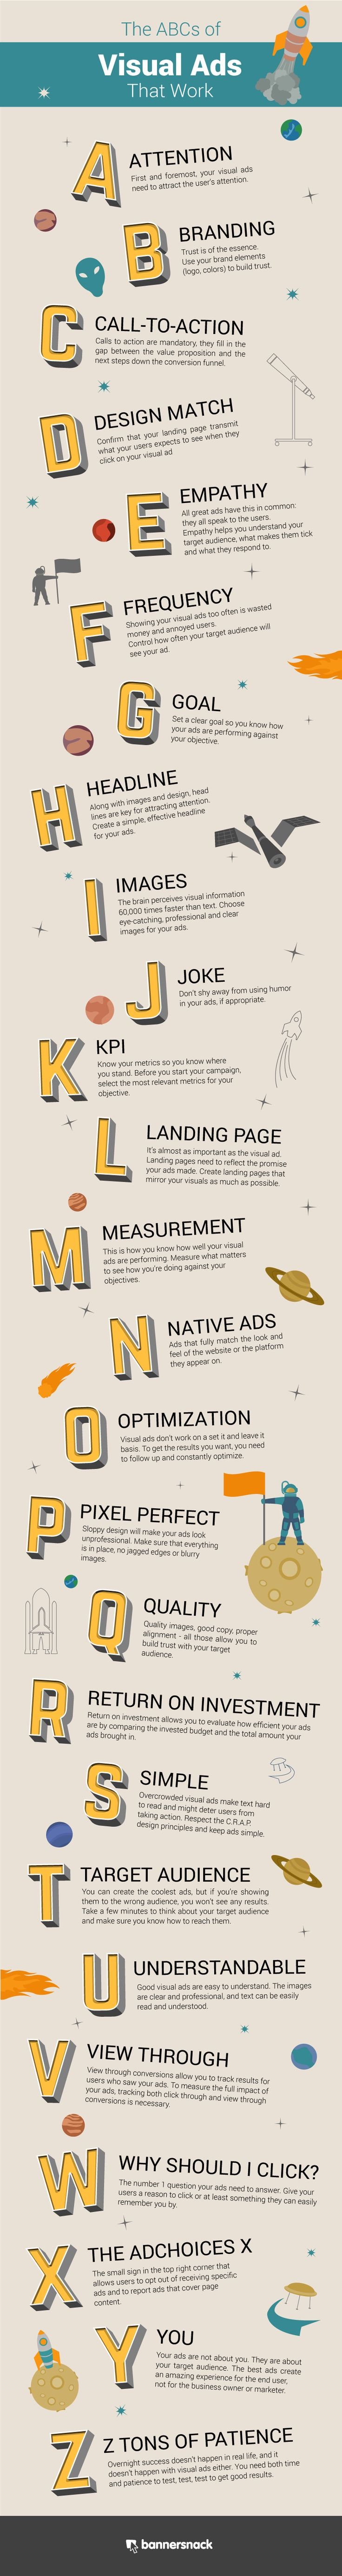 Do you know the ABC of effective banner ads? This infographic illustrates everything you need to know about visual ad creation.